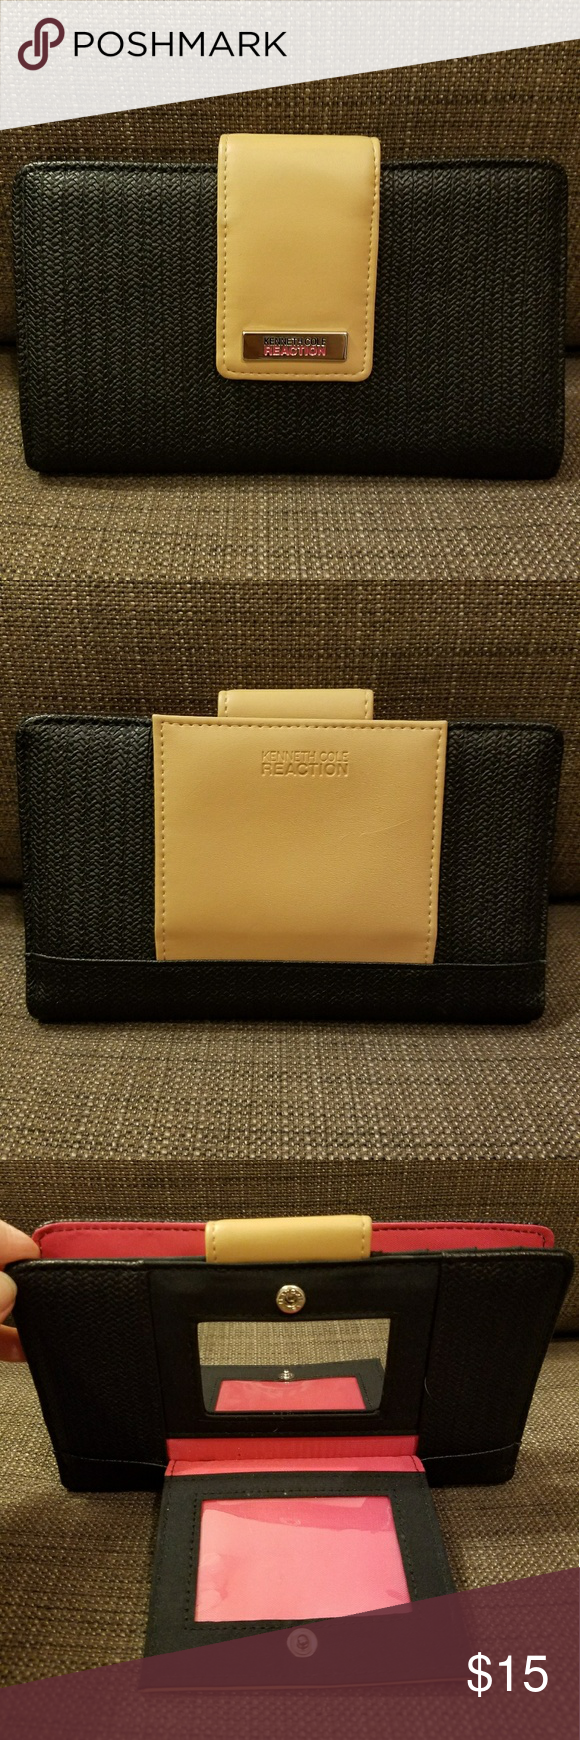 Kenneth Cole Reaction Wallet A great everyday wallet, black, tan, with a bright pink interior.  A separate small wallet section on the back for an ID (I used it for business cards) and a mirror. Kenneth Cole Reaction Bags Wallets